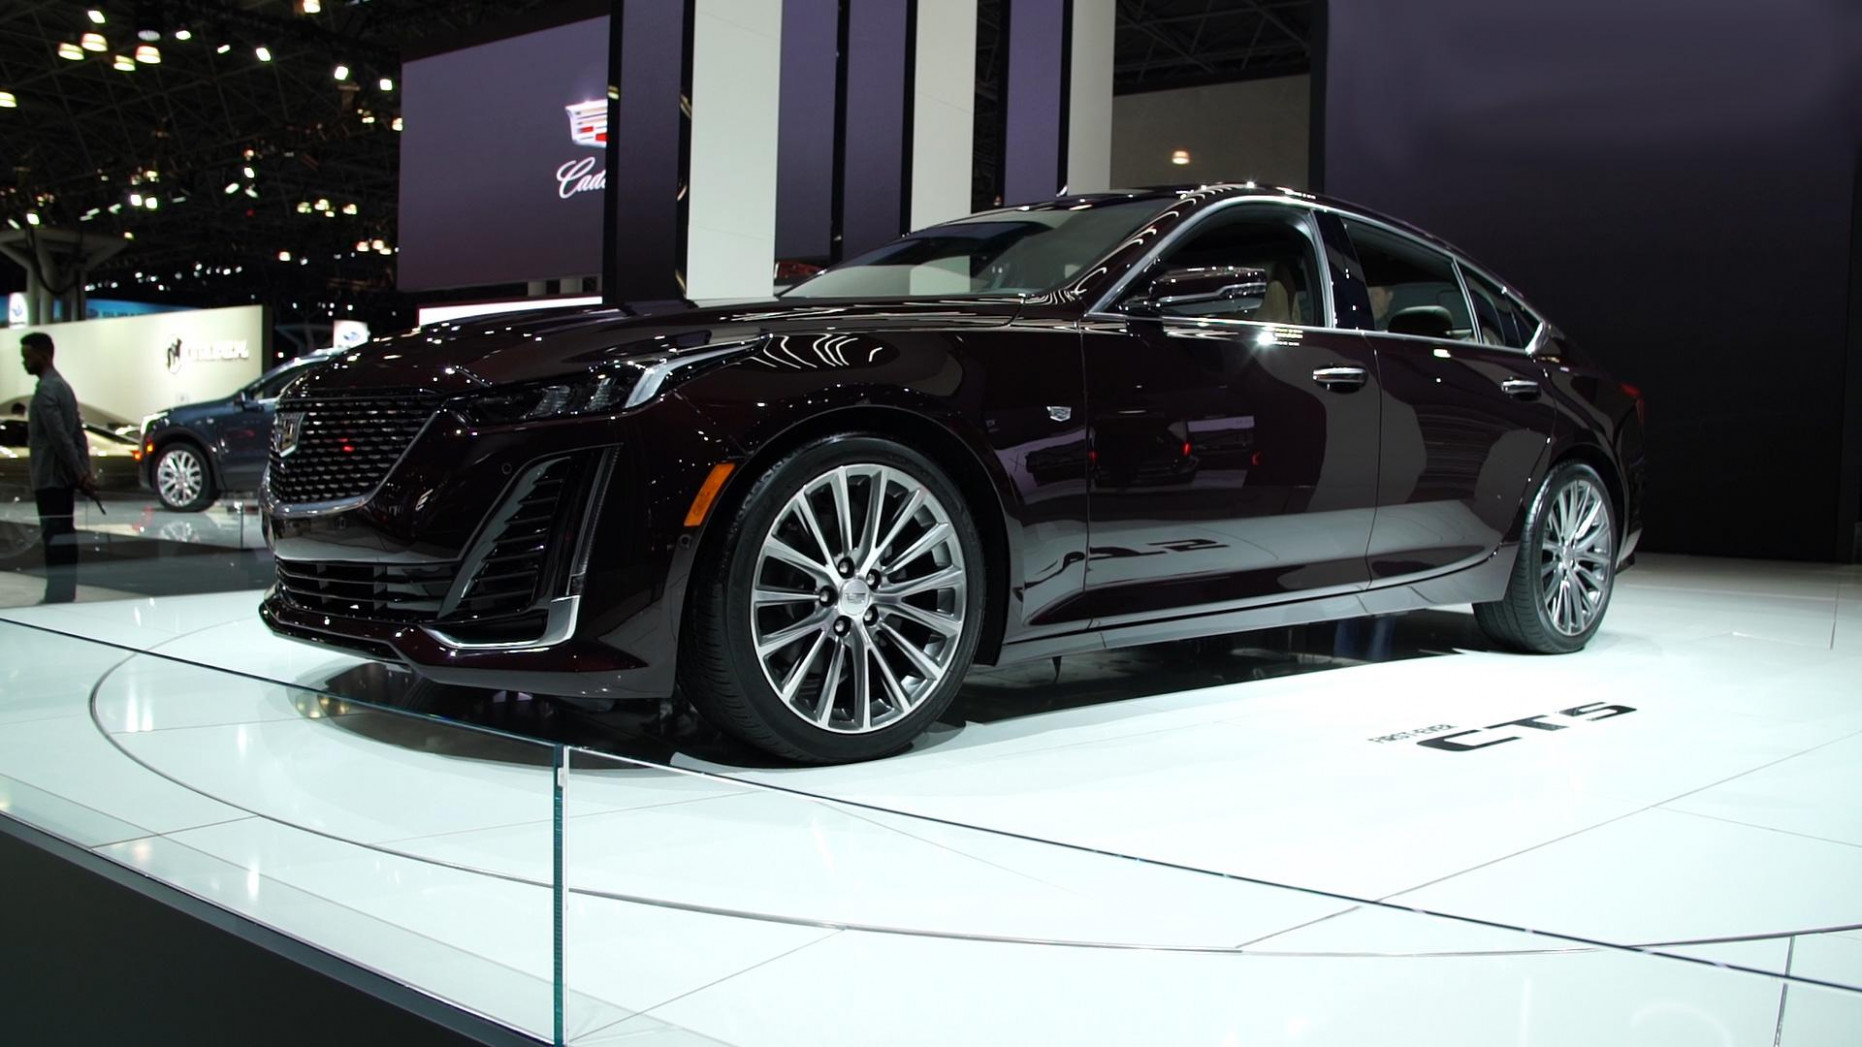 Stylish 6 Cadillac CT6 and CT6-V Unveiled - Consumer Reports - 2020 cadillac for sale near me